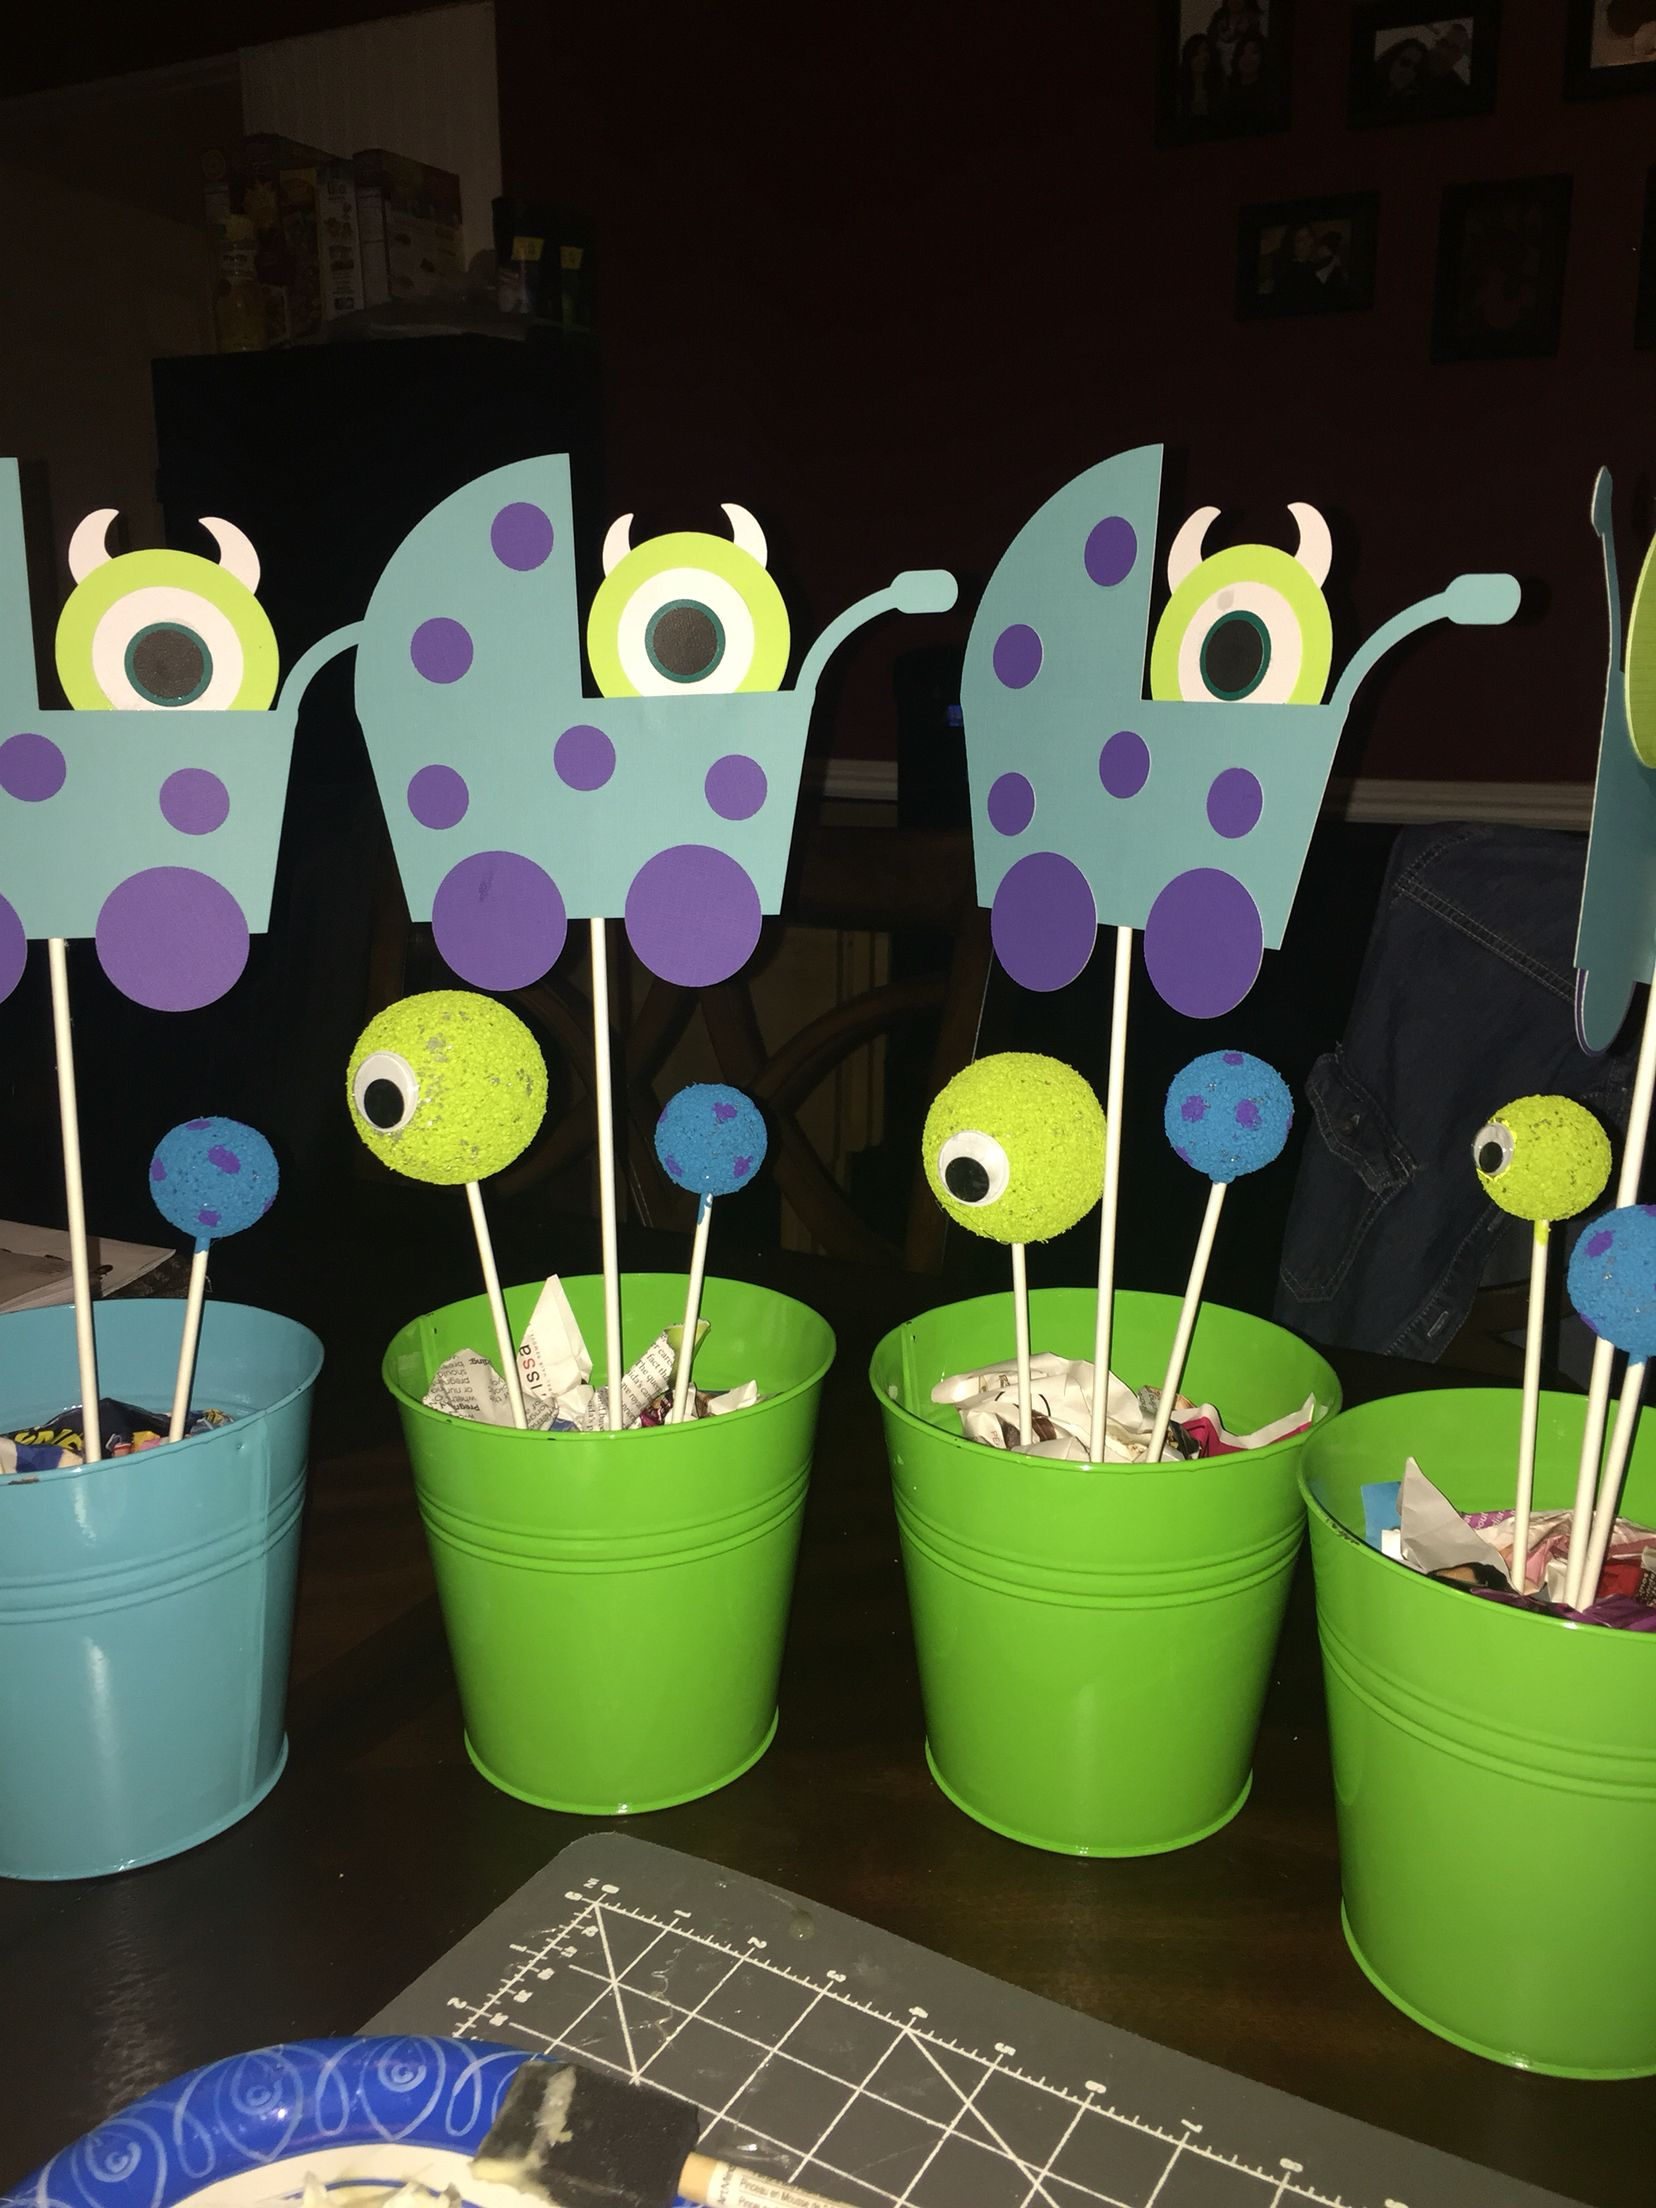 Monster Inc Baby Shower Decorations Almost Complete Monsters Inc Baby Shower Center Pieces Designs